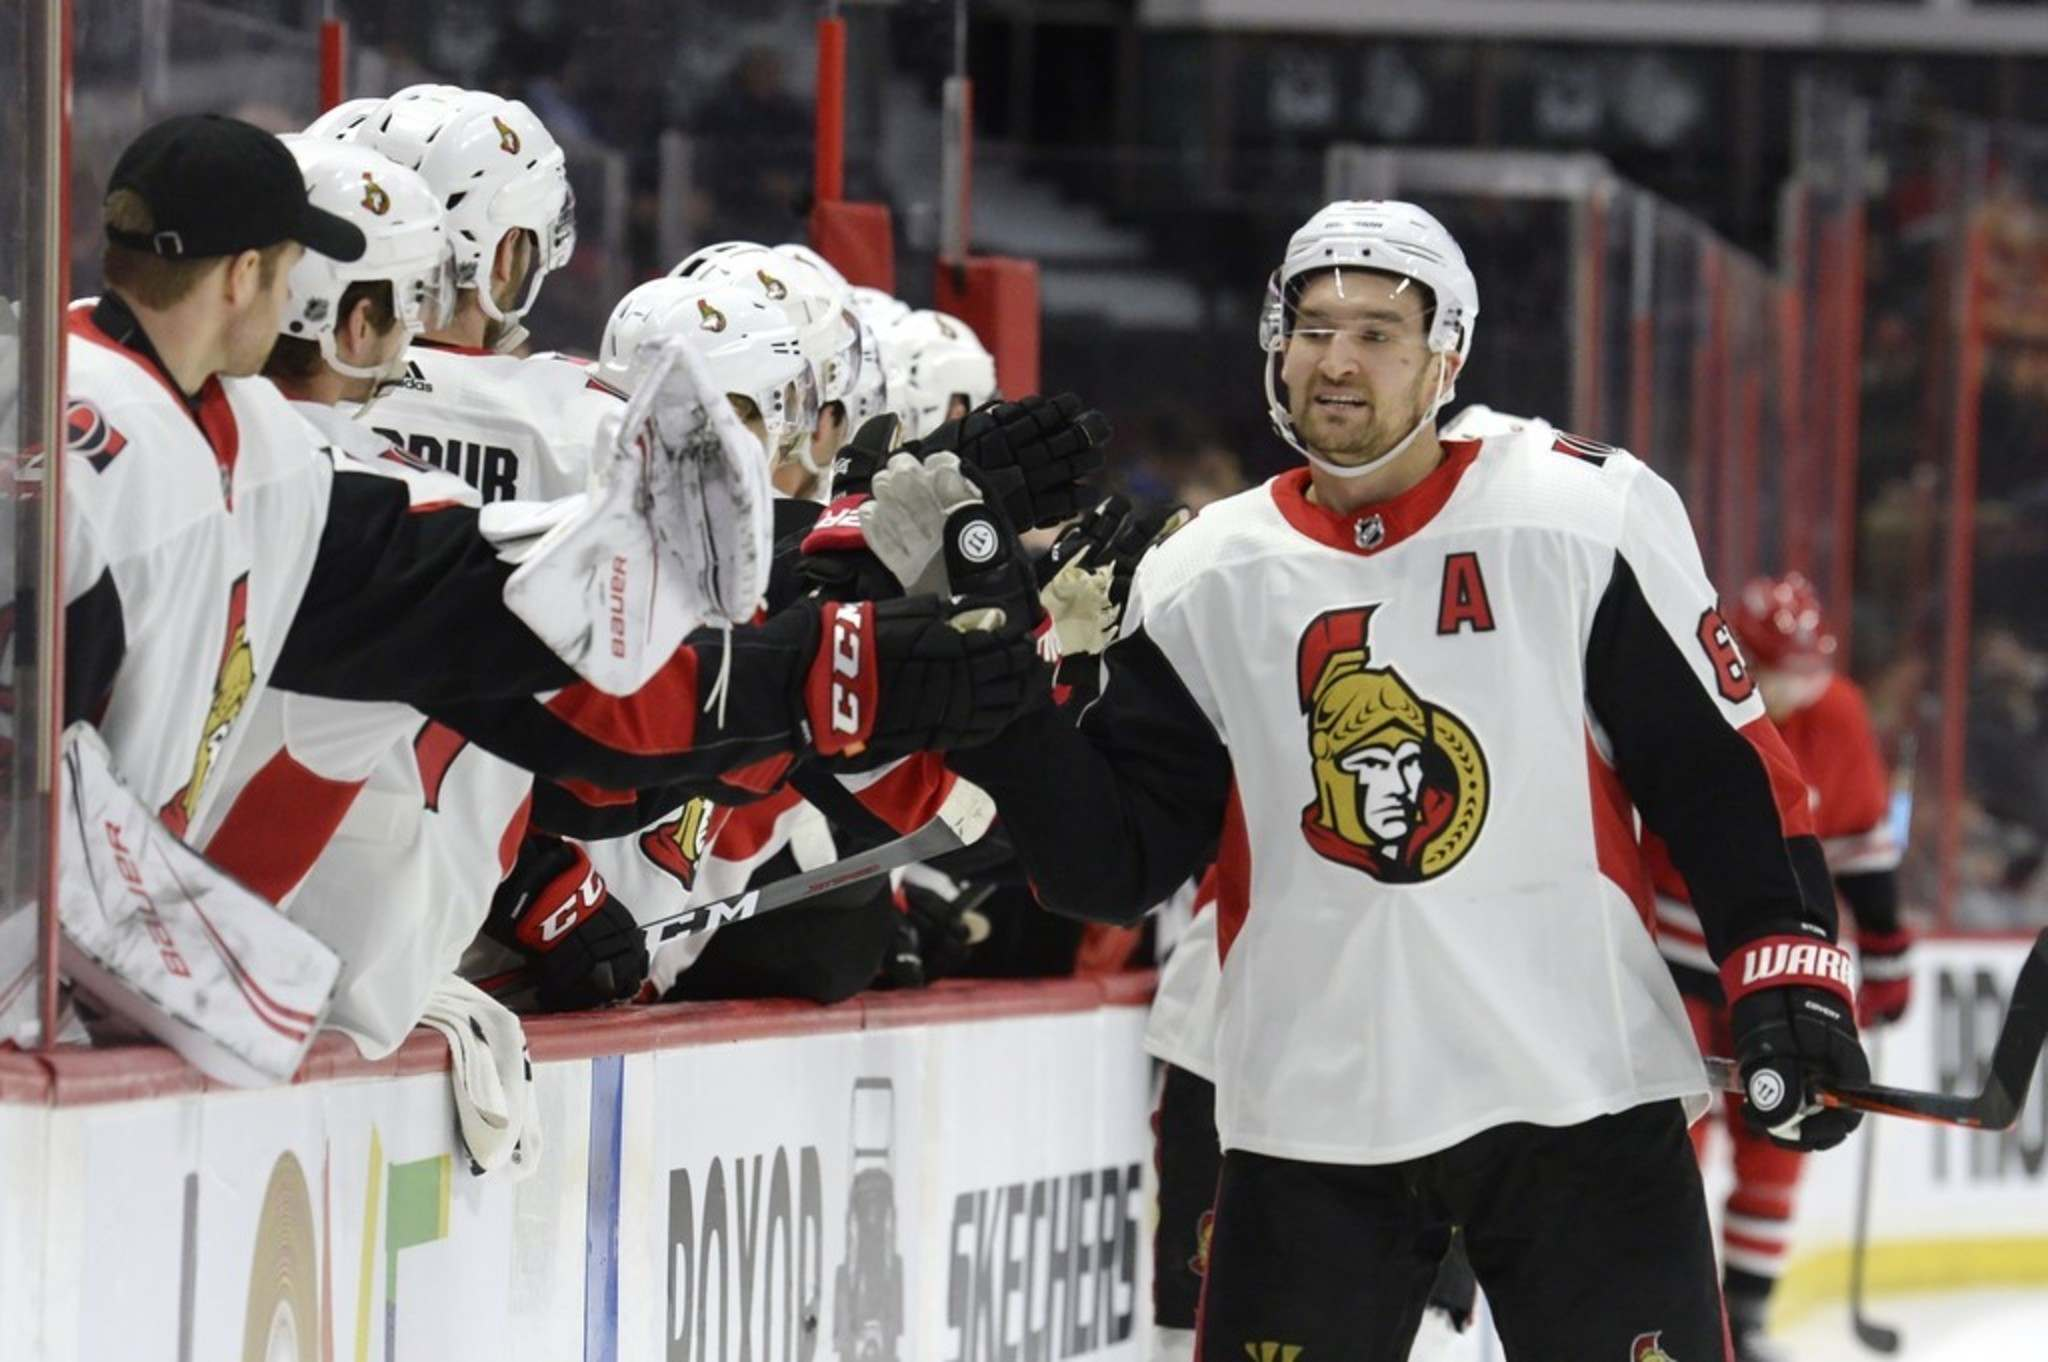 ADRIAN WYLD / THE CANADIAN PRESS FILES <p />   Ottawa Senators alternate captain Mark Stone is one of three players the cellar-dwelling Ottawa Senators may move before next Monday&#39;s trade deadline. The Senators&#39; general manager, Pierre Dorion, spent the weekend in Winnipeg watching prospects and meeting Jets GM Kevin Cheveldayoff.</p>